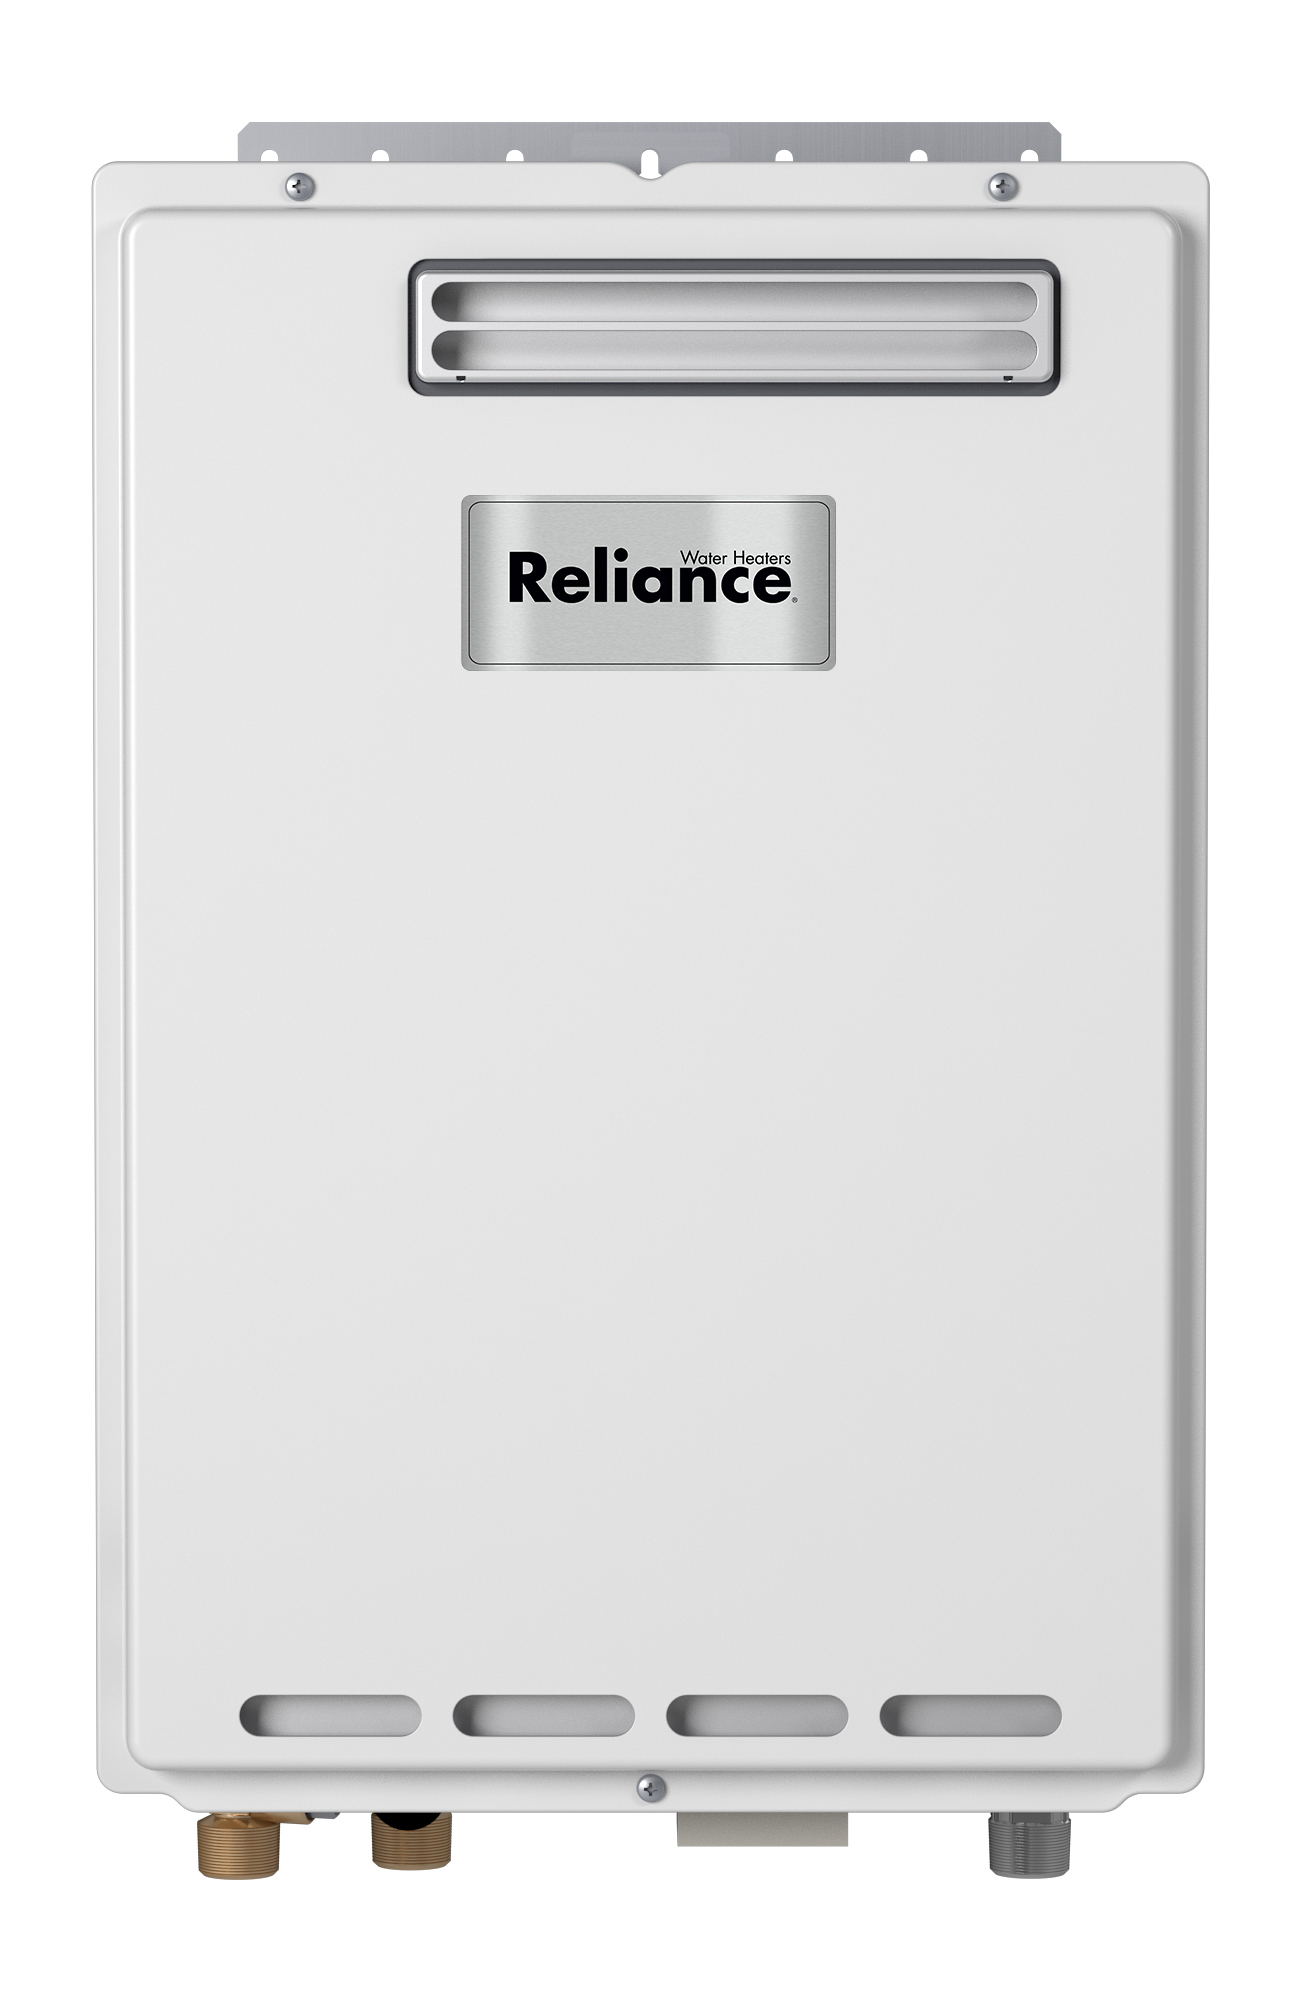 wiring diagram for reliance water heater wiring reliance water heater wiring diagram reliance auto wiring on wiring diagram for reliance water heater